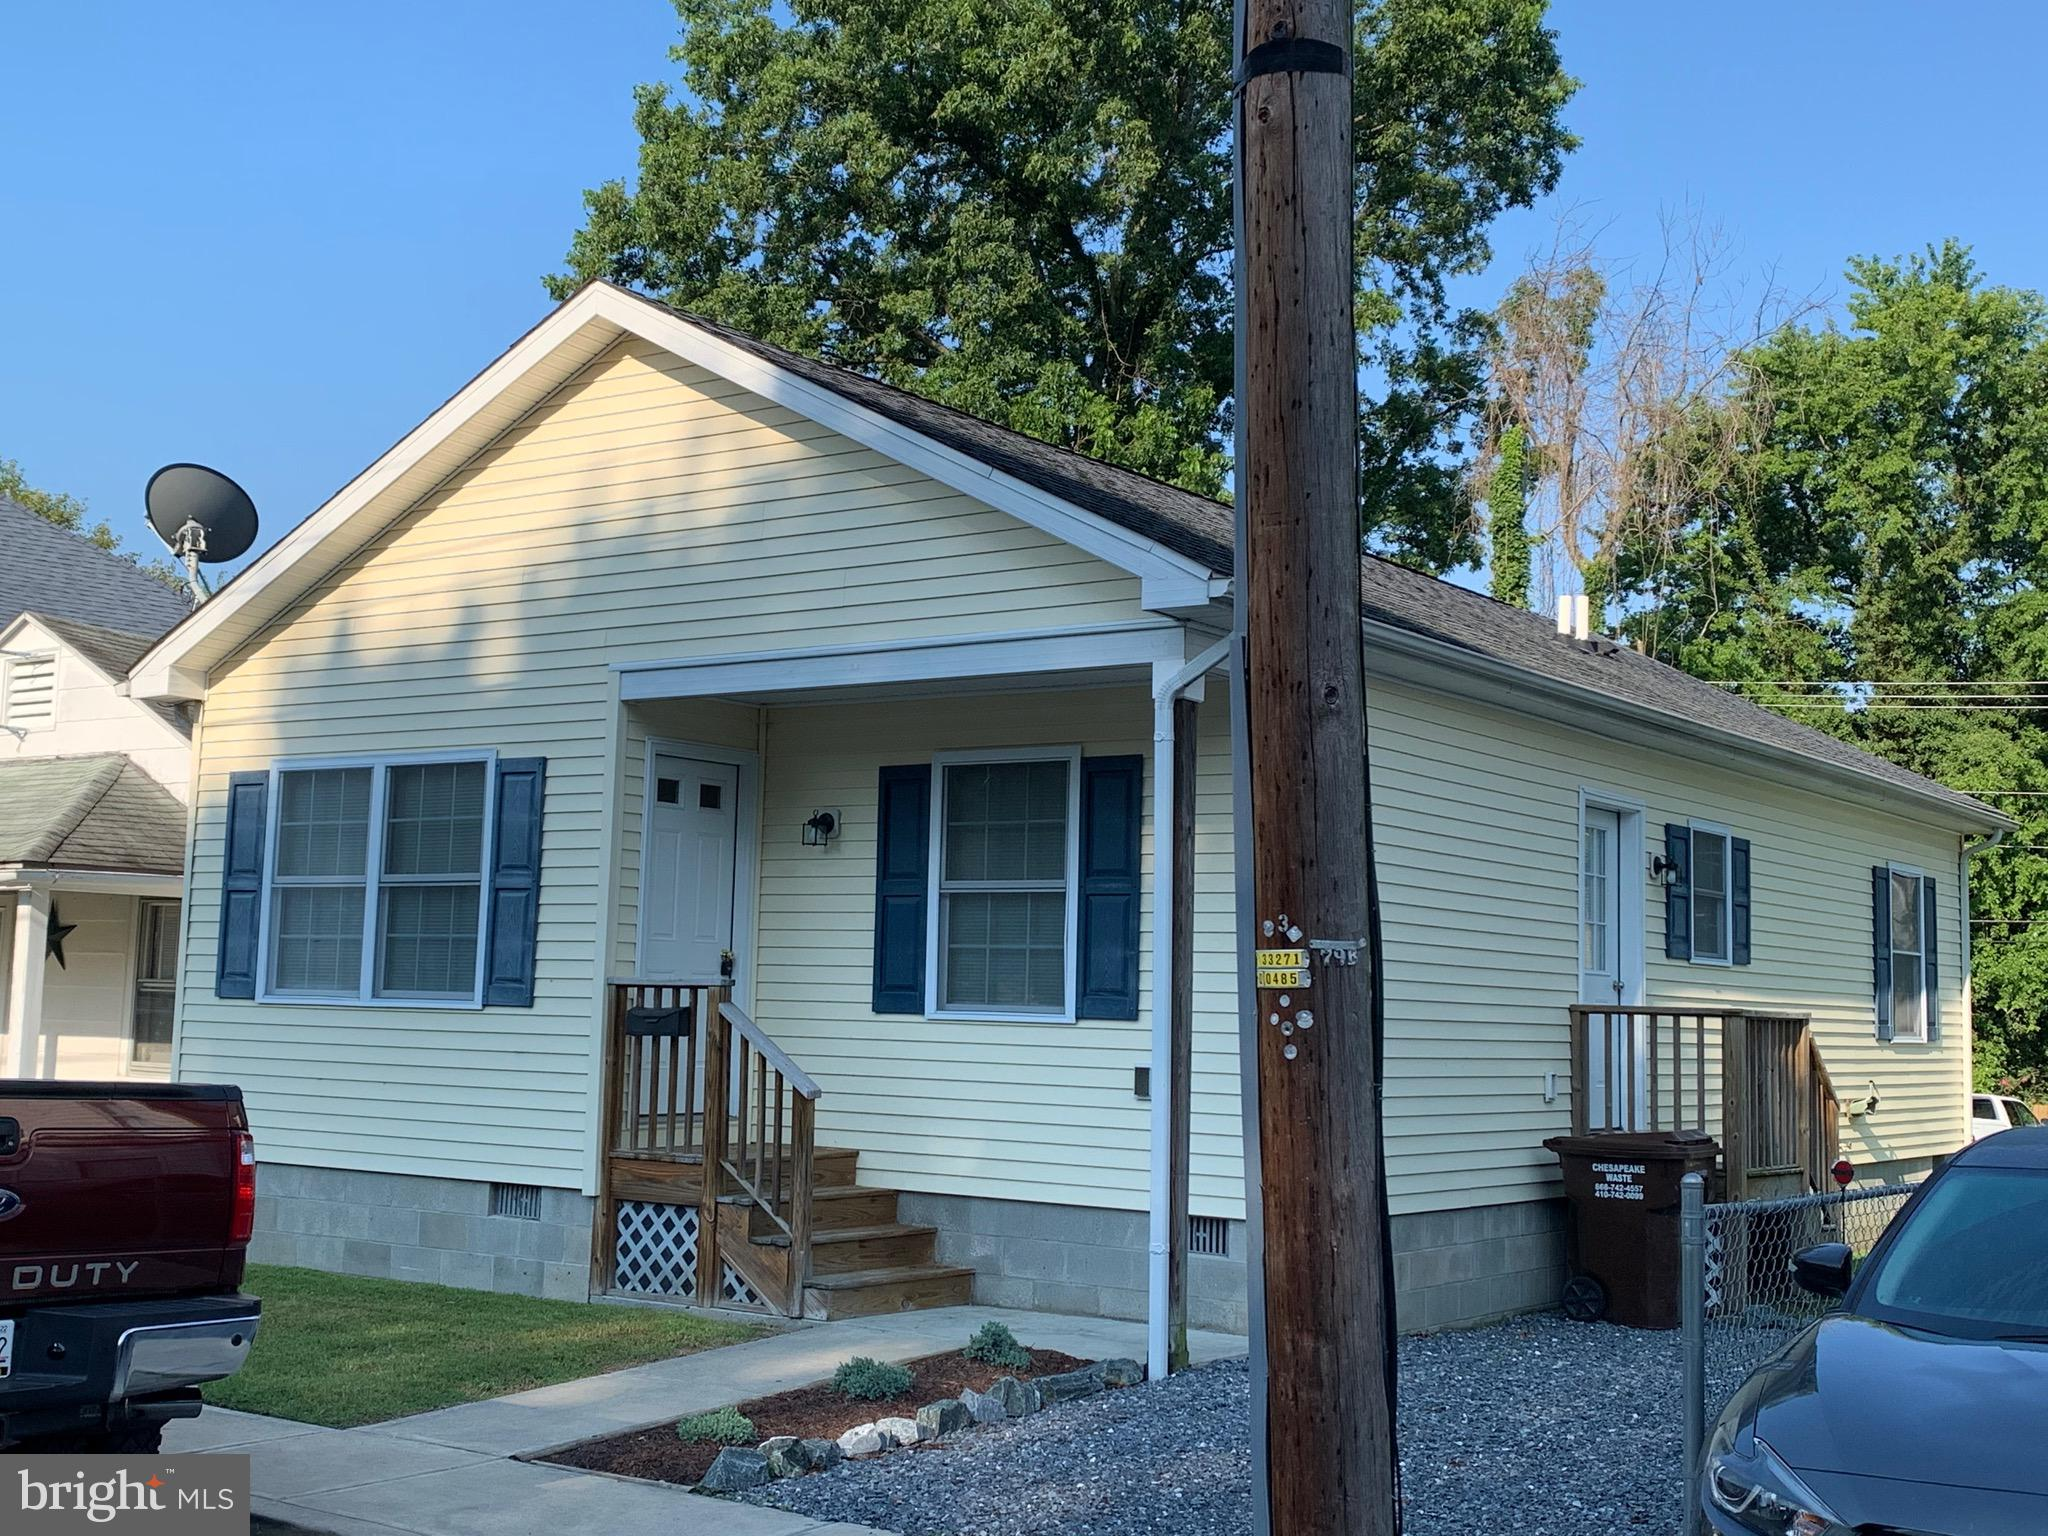 Affordable, like new 1 story with 3 beds and 1 bath.  Good condition and access from 2 streets.  New stove and refrigerator on order.  Central Cambridge location.